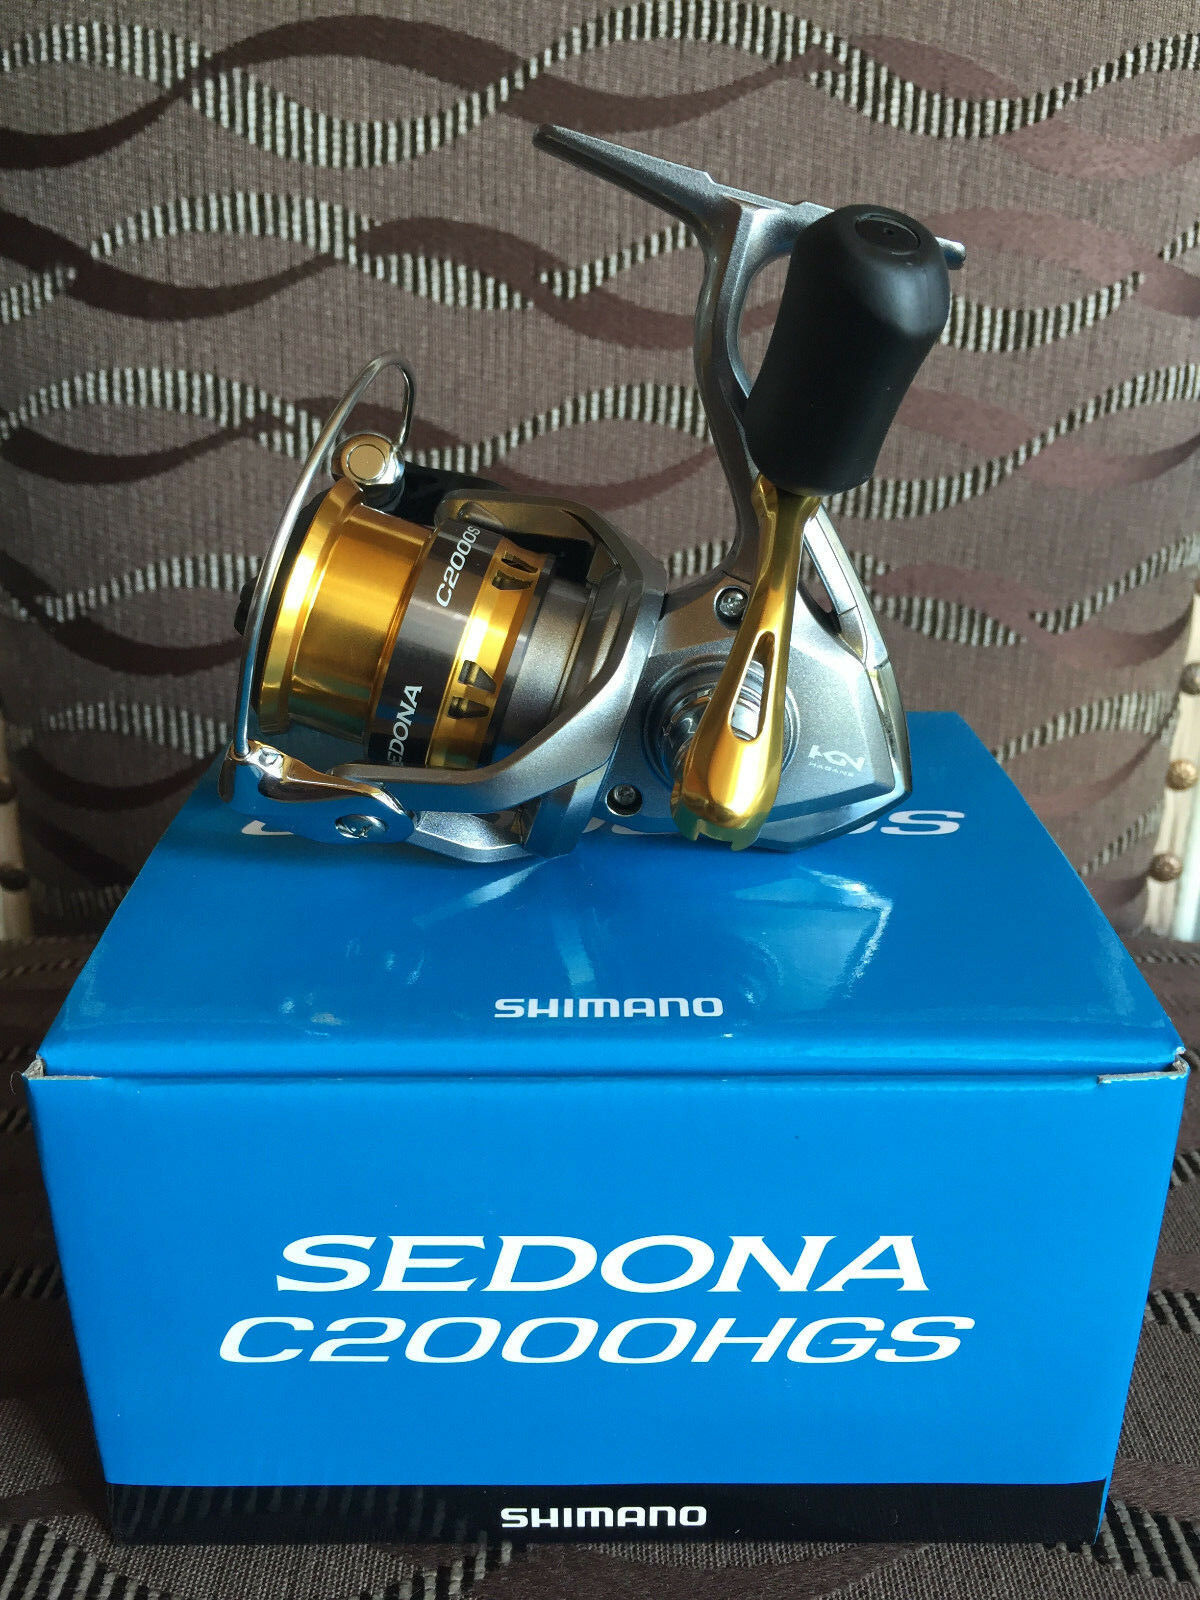 Shimano Sedona  C2000HGS FI Spinnrolle  free shipping & exchanges.